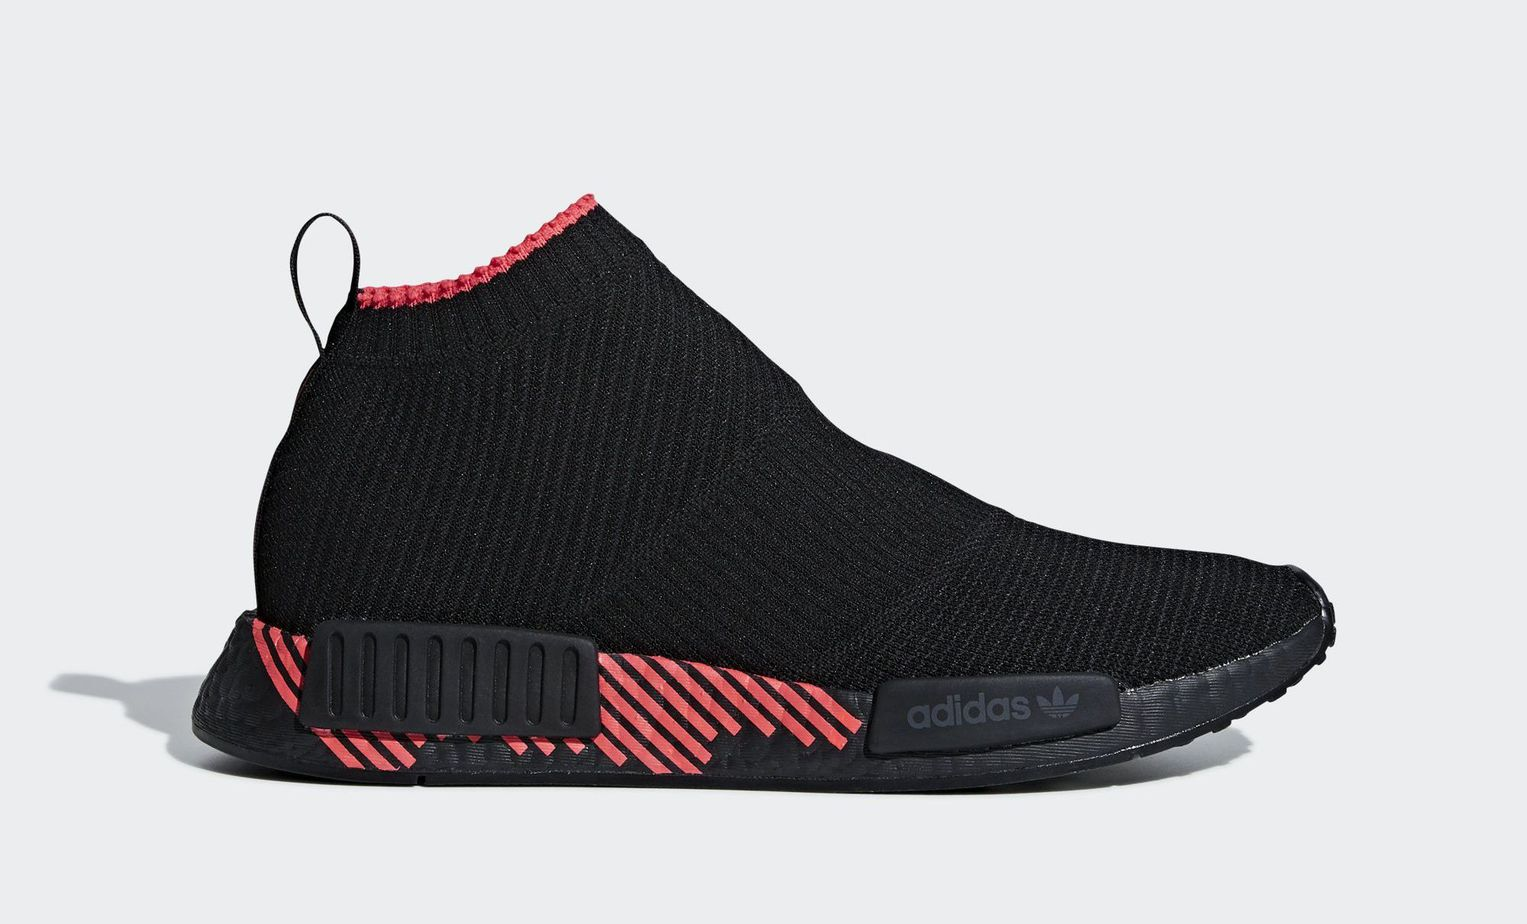 36c5858974559 Updated adidas NMD Release Dates - JustFreshKicks